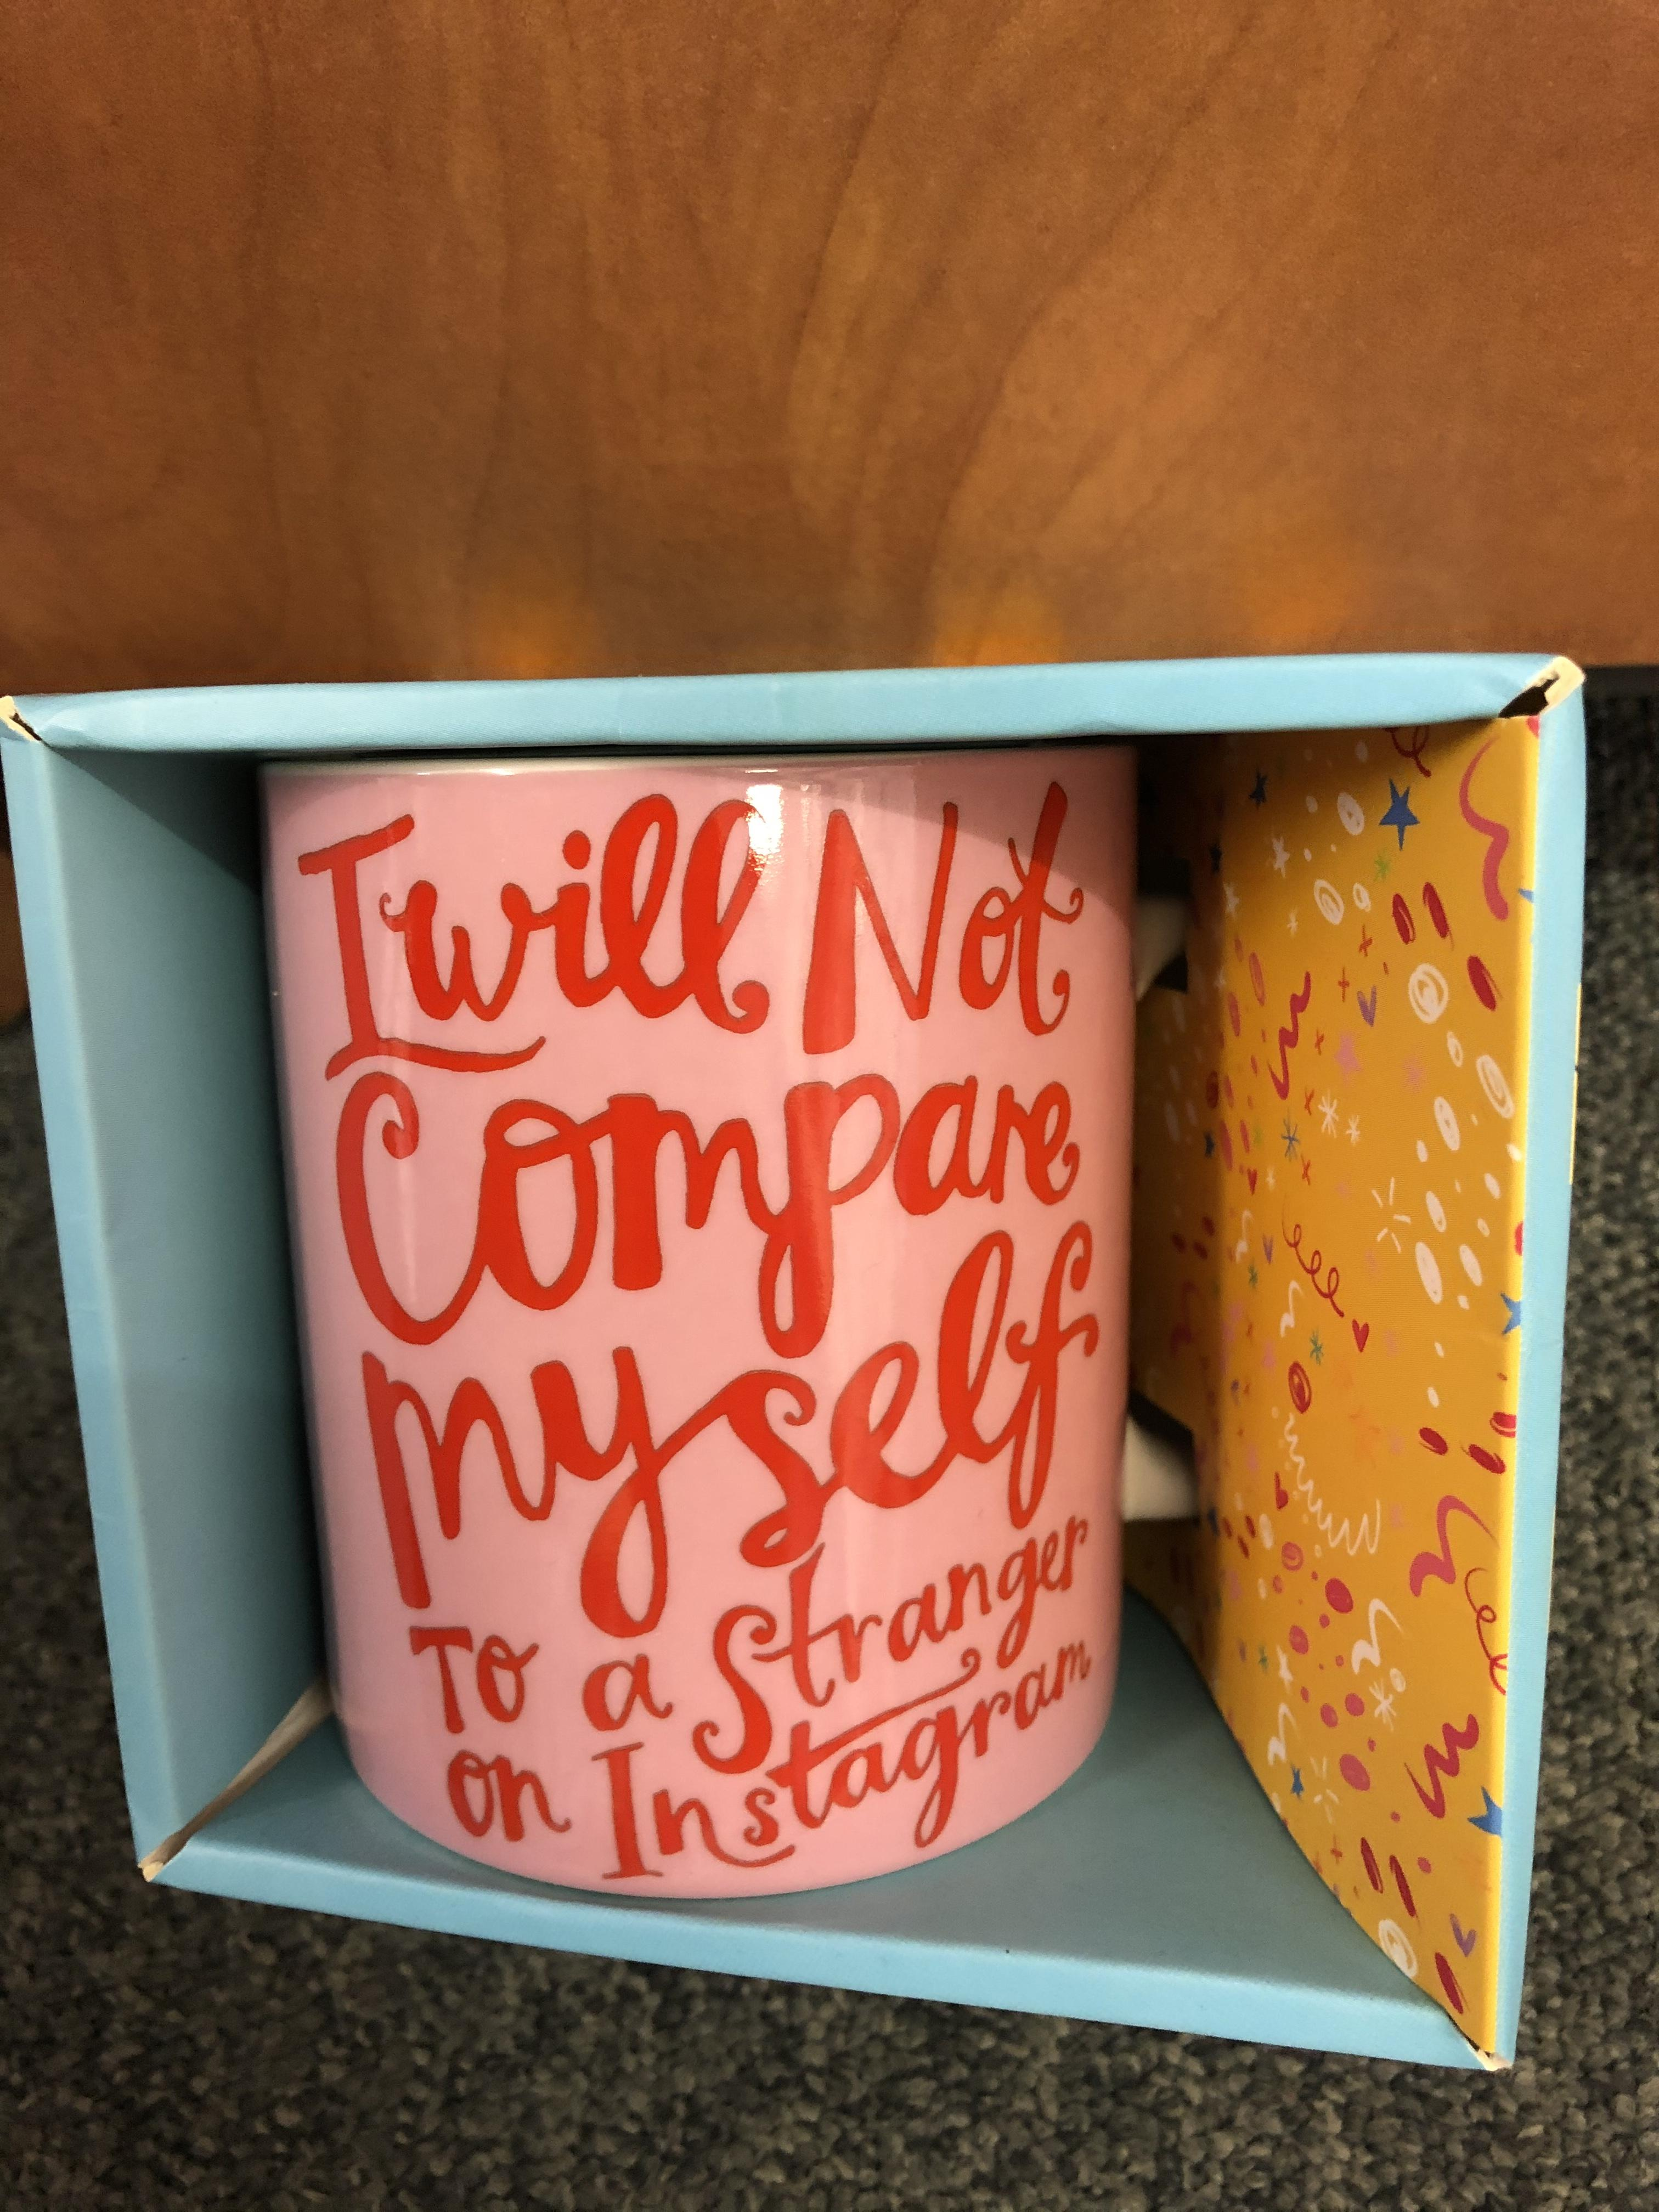 Emily Coxhead 'I Will Not Compare Myself To A Stranger On Instagram' Mug